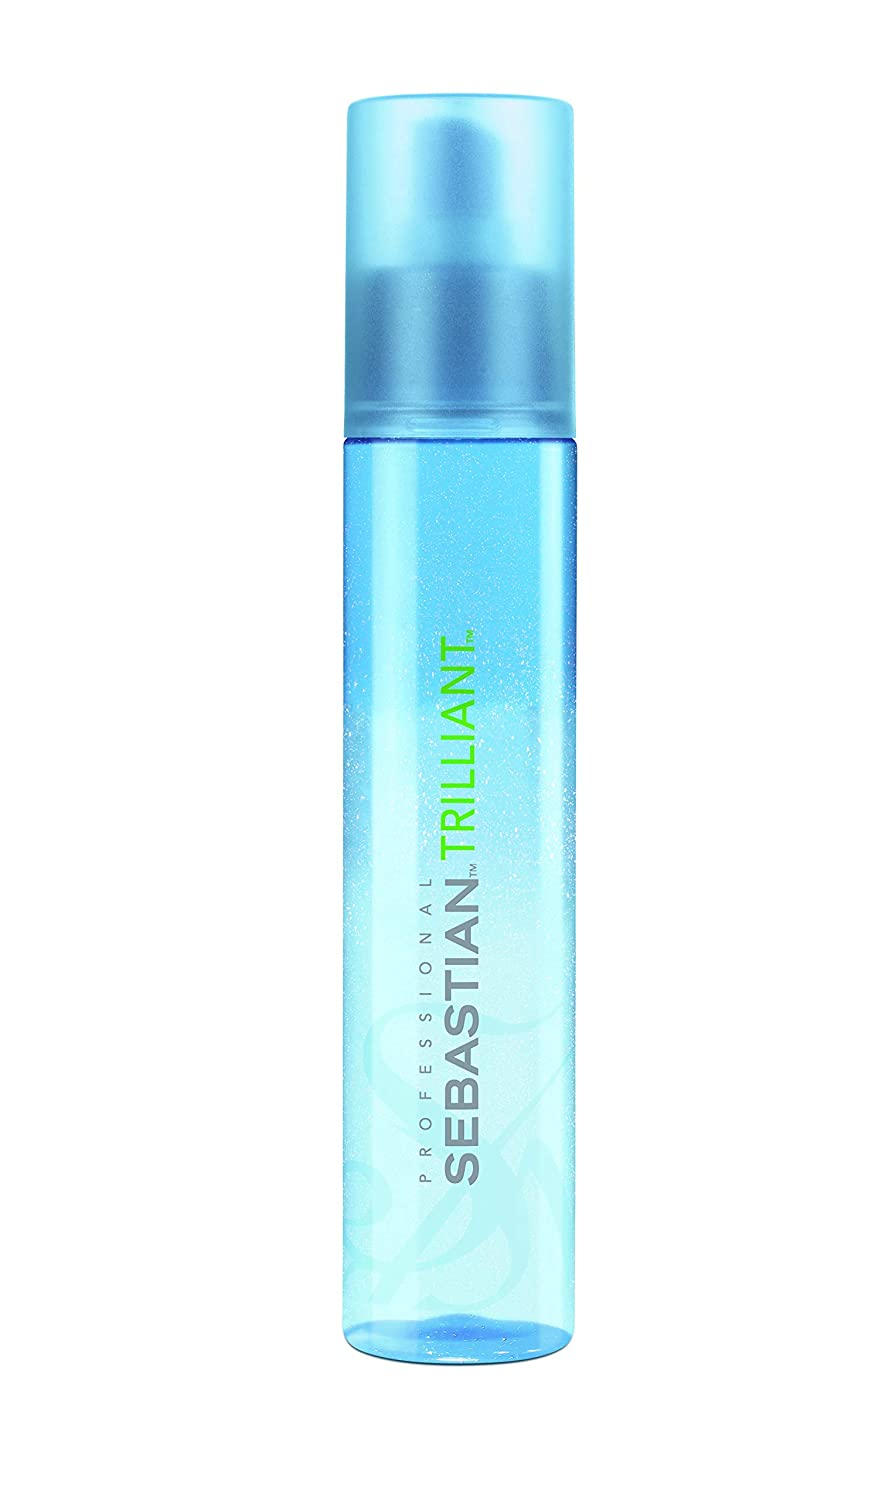 Sebastian Trilliant Thermal Protection and Sparkle Complex for Unisex, 5.07 Ounce 0070018023261